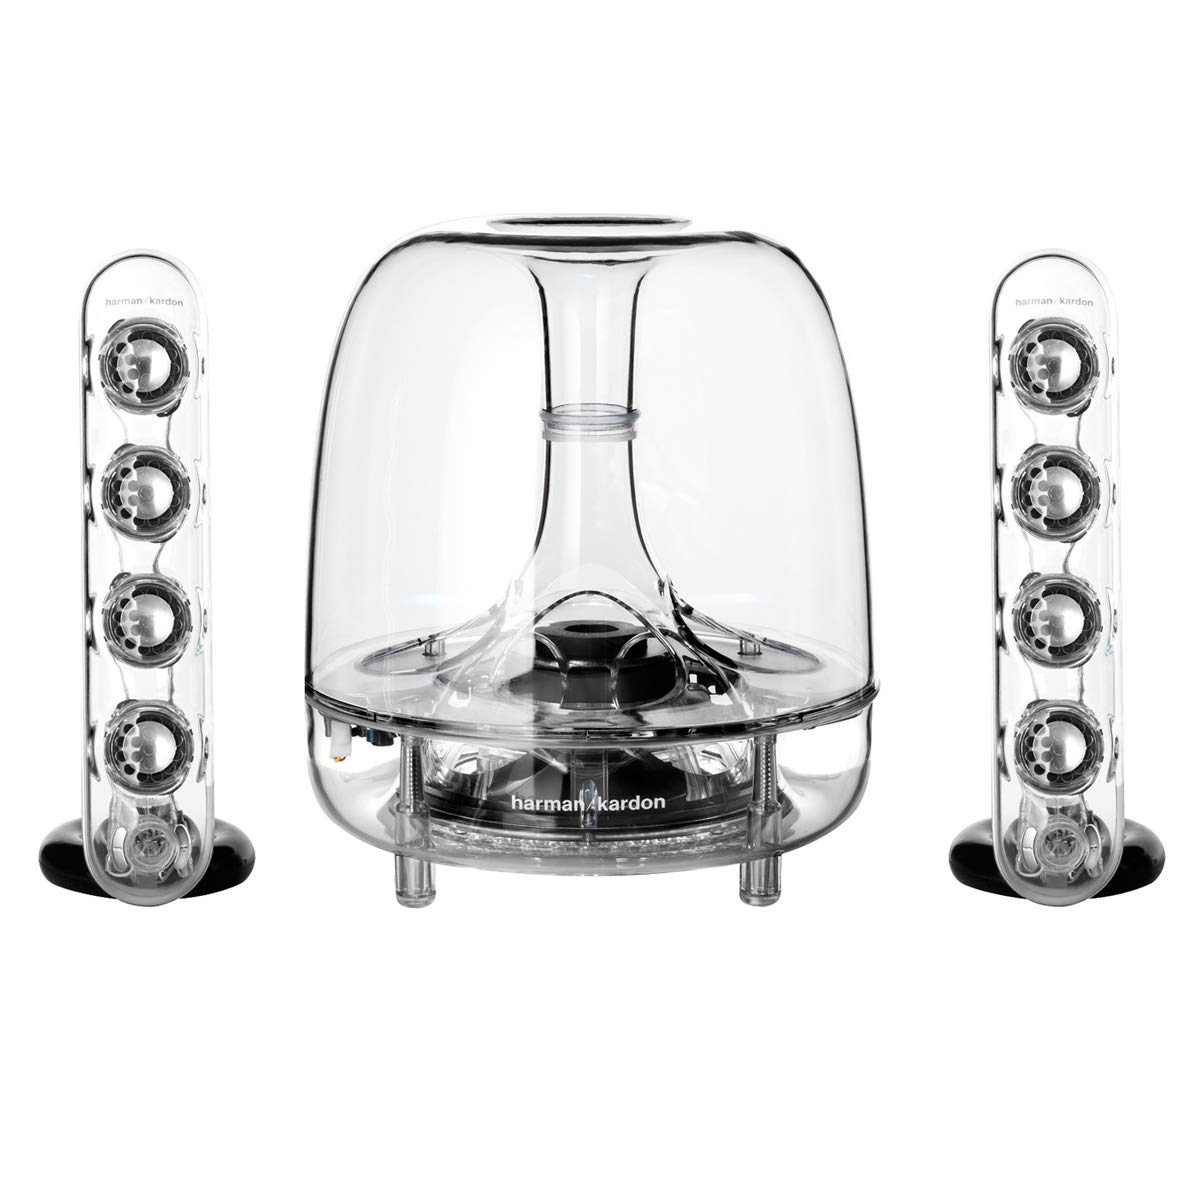 Harman Kardon Soundsticks III 2.1 Channel Multimedia Speaker System with Subwoofer by Harman Kardon